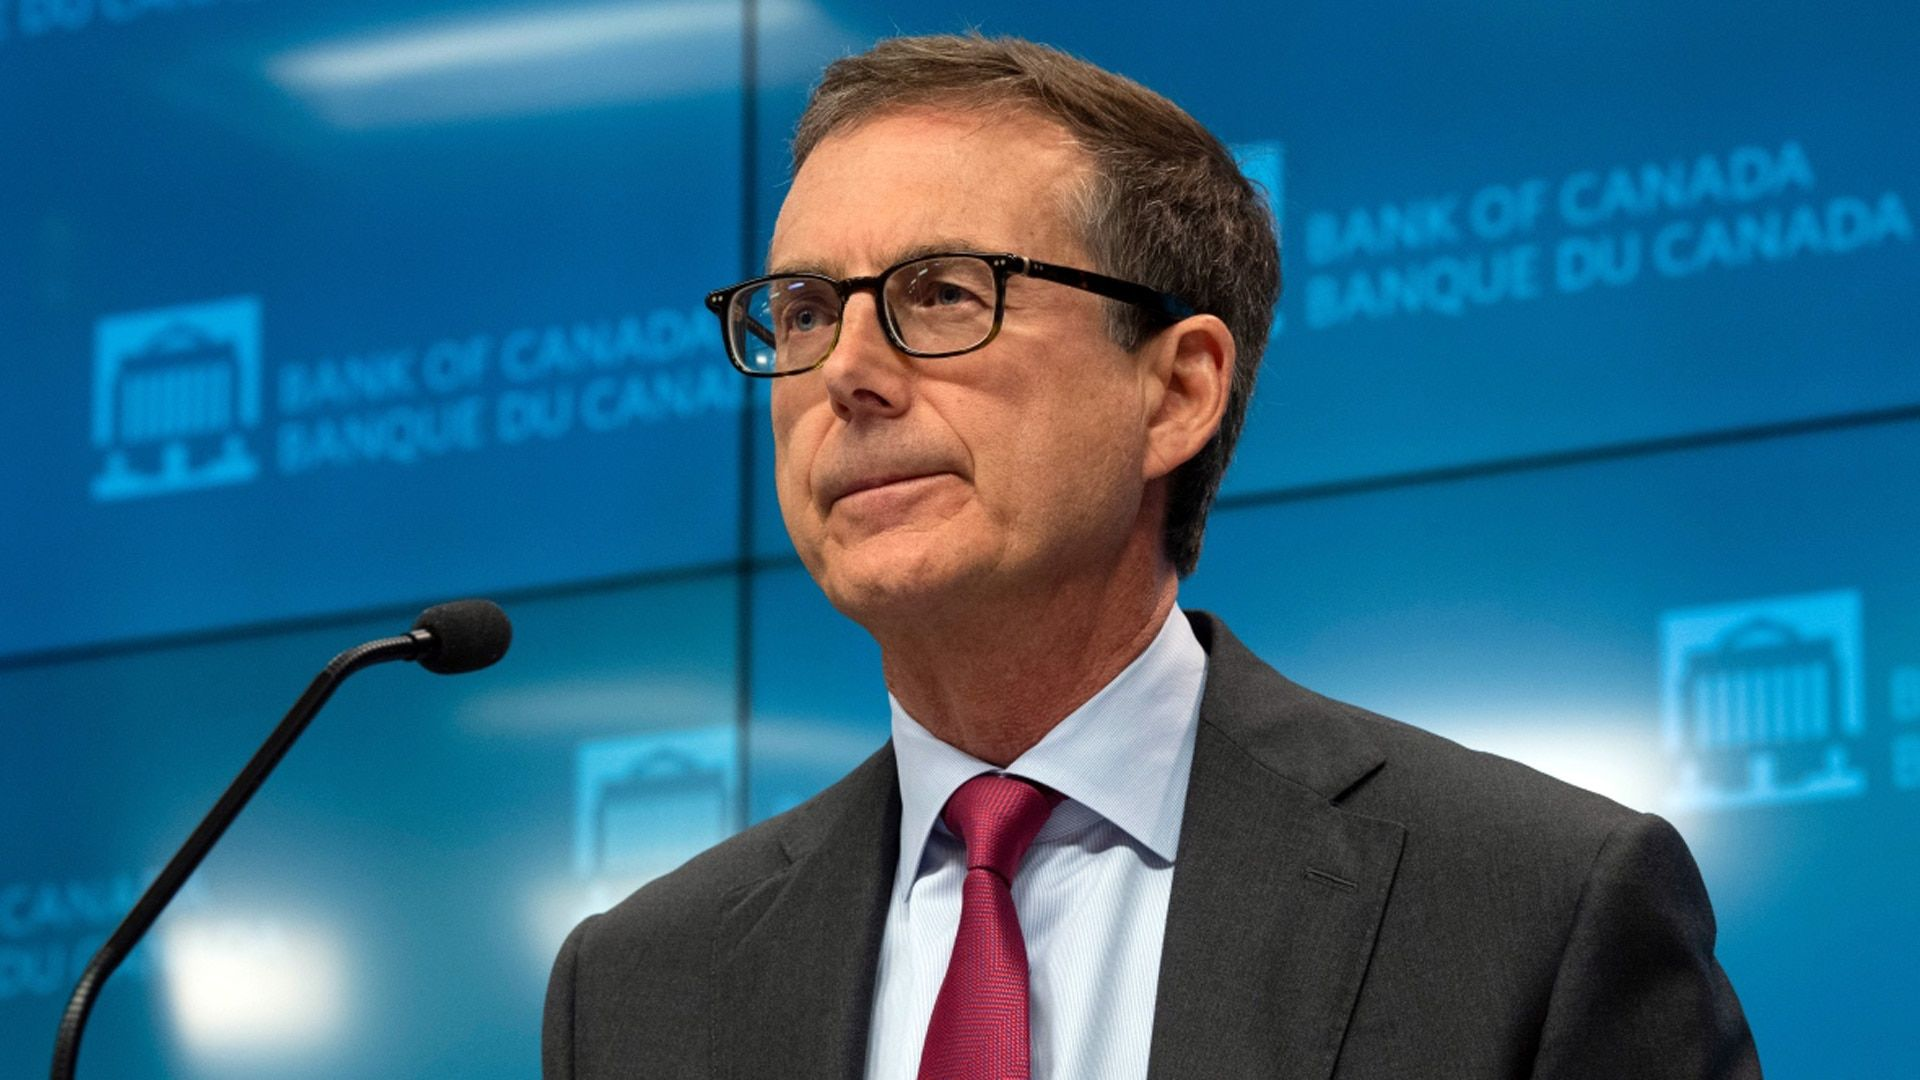 Uneven rebound poses risk for entire economy, Bank of Canada governor says